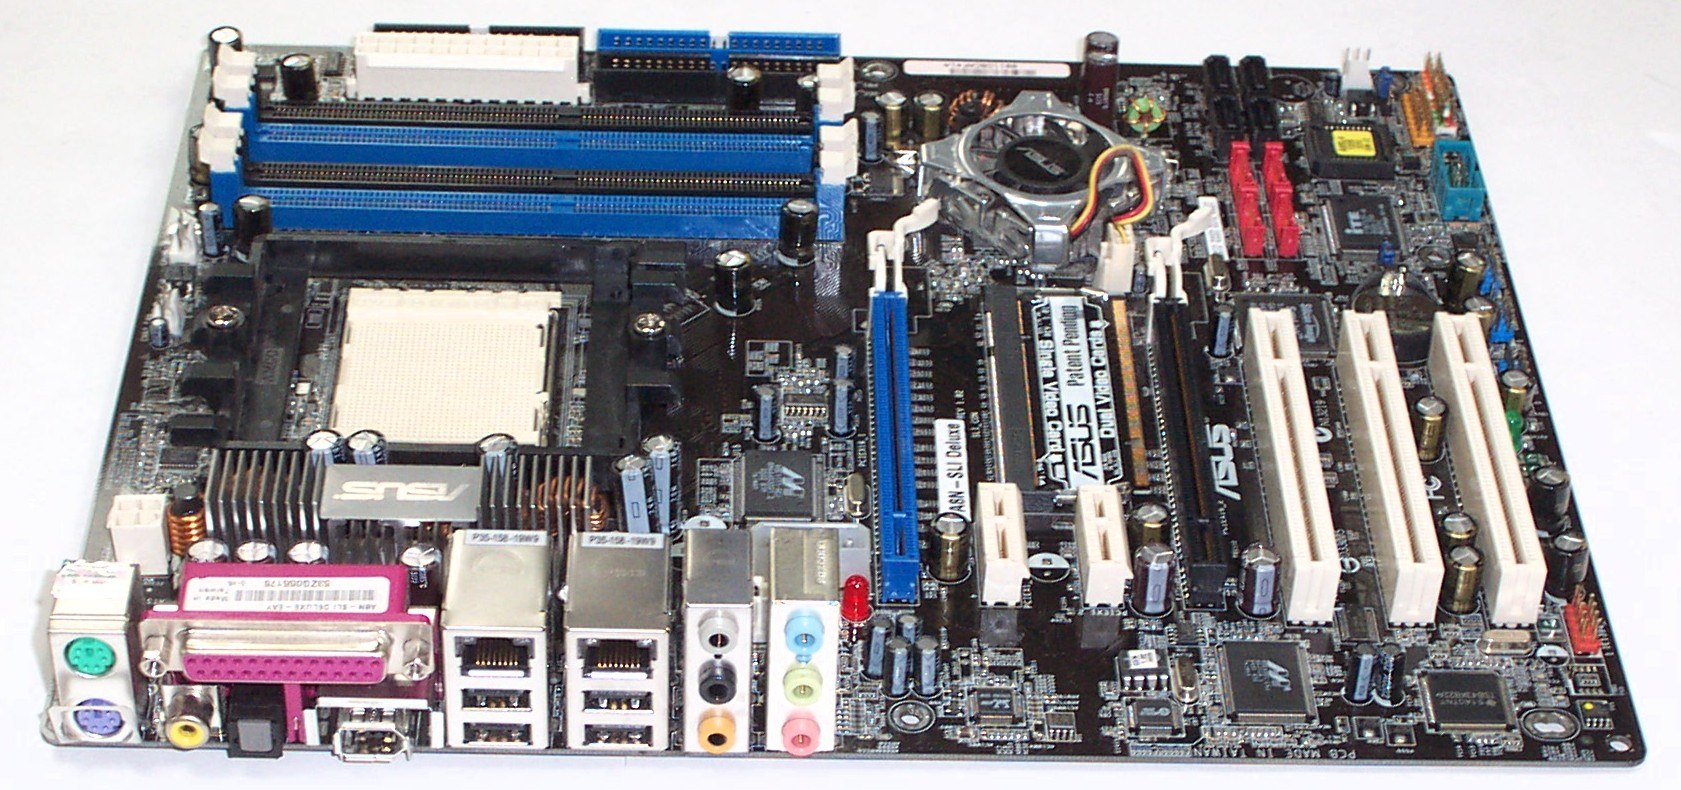 Asus a8n32-sli deluxe — a motherboard on the top gaming chipset.